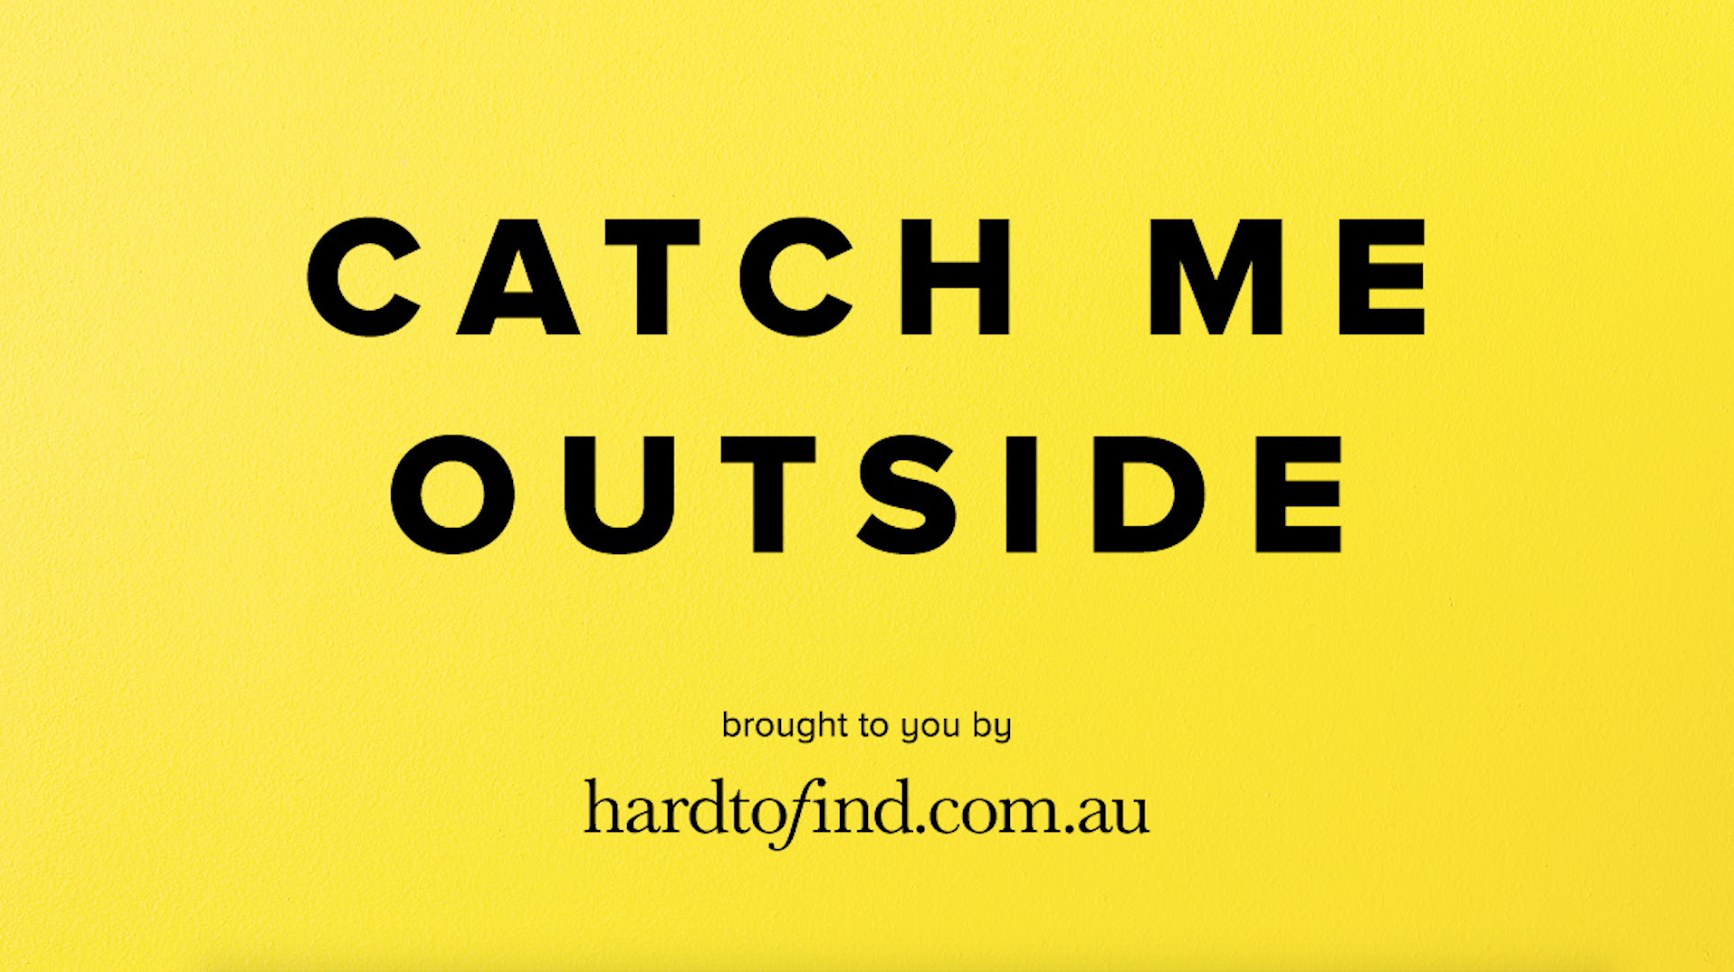 Alice Harrington creative Catch Me Outside hardtofind